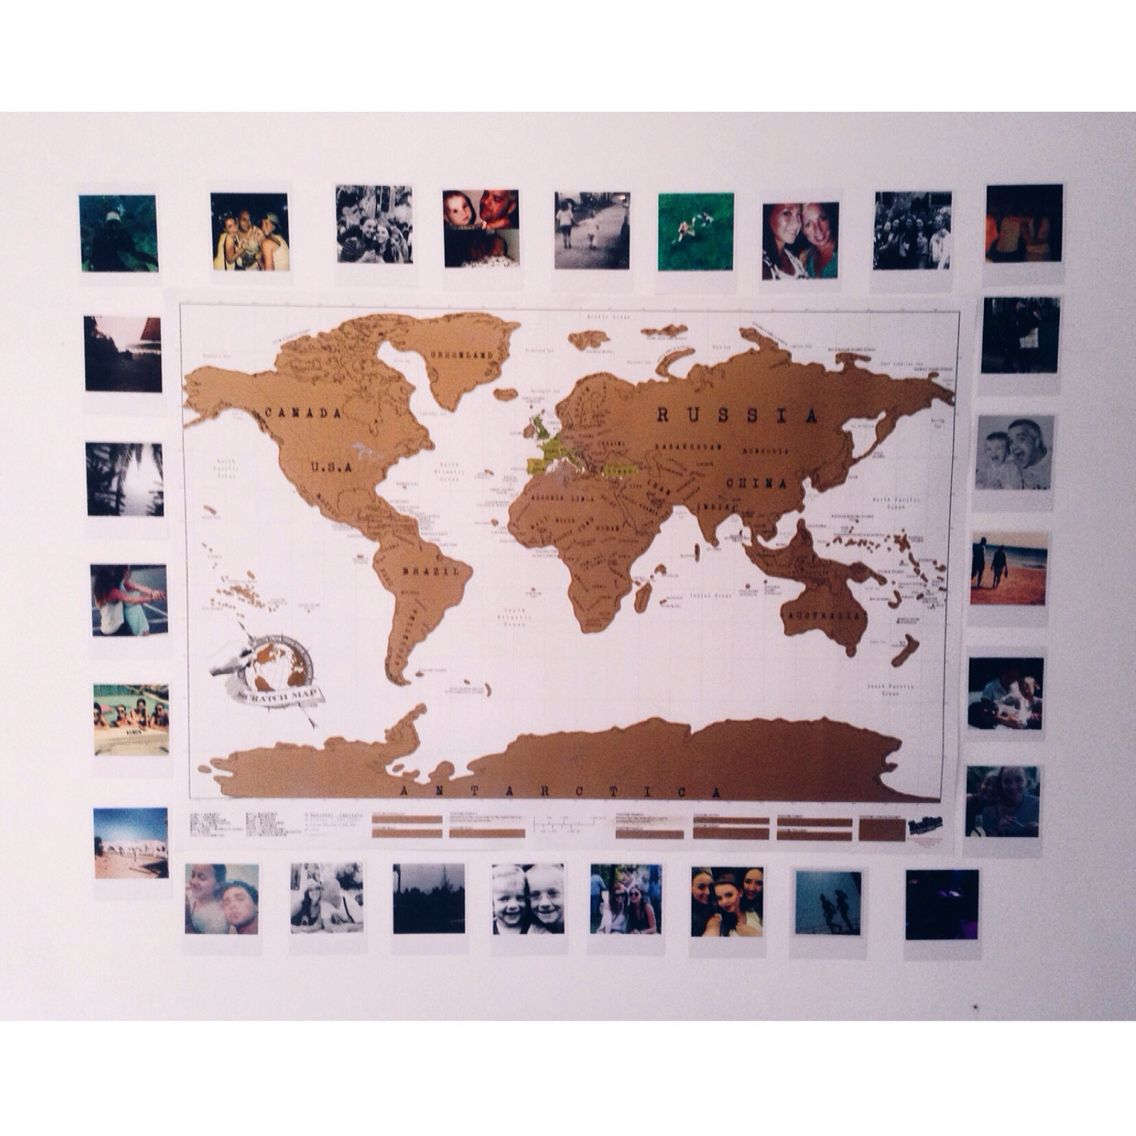 Scratch map and polaroids room ideas pinterest room ideas scratch map and polaroids gumiabroncs Gallery